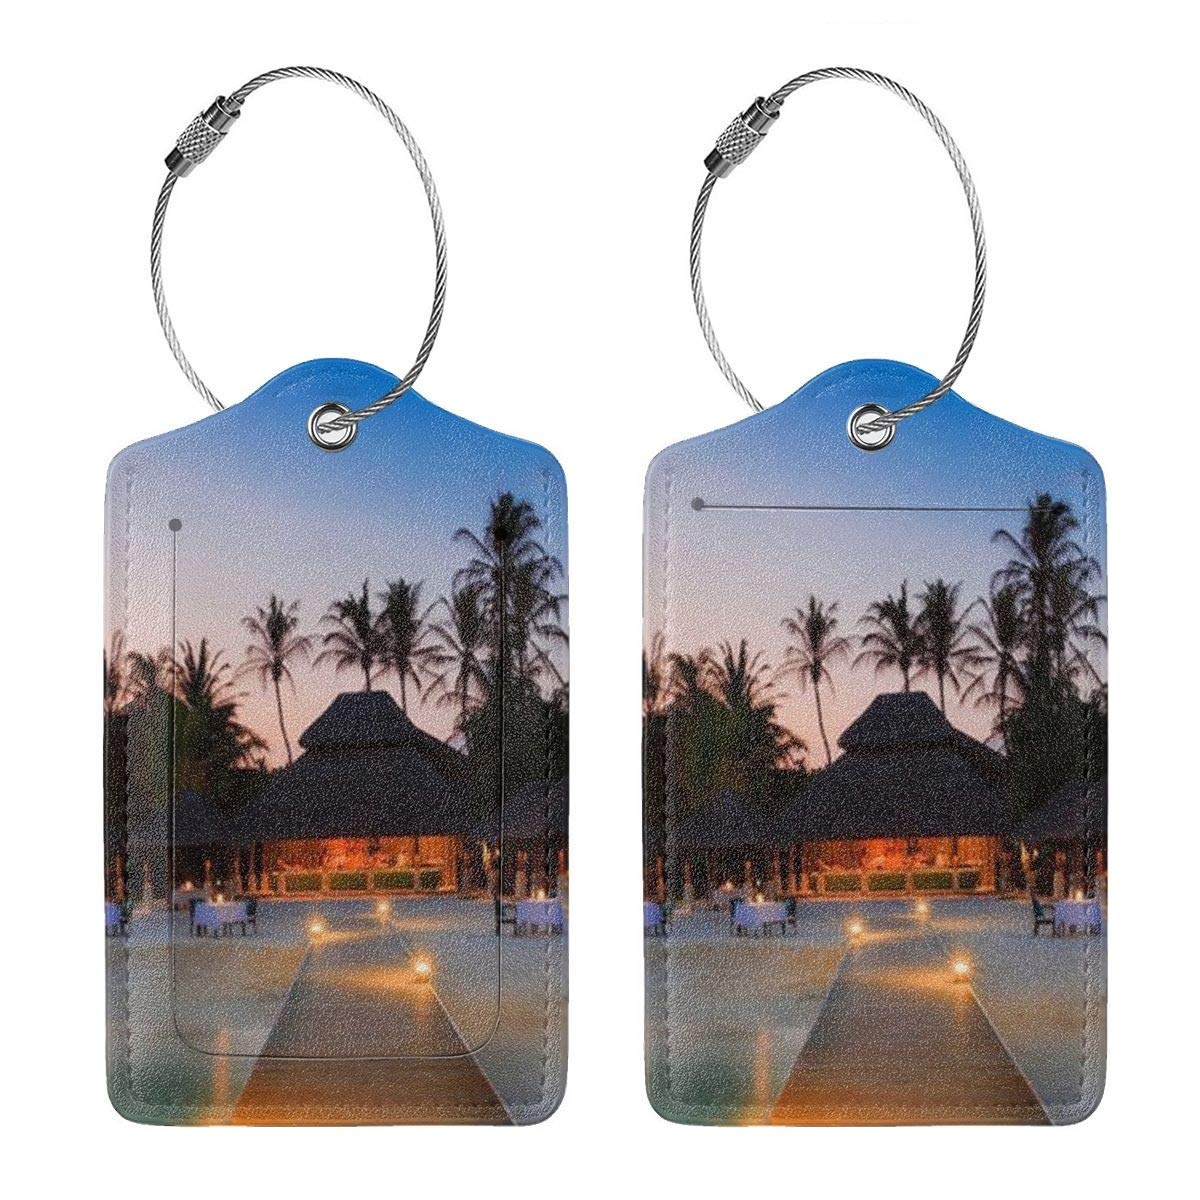 Seaside Resort Luggage Tag Label Travel Bag Label With Privacy Cover Luggage Tag Leather Personalized Suitcase Tag Travel Accessories